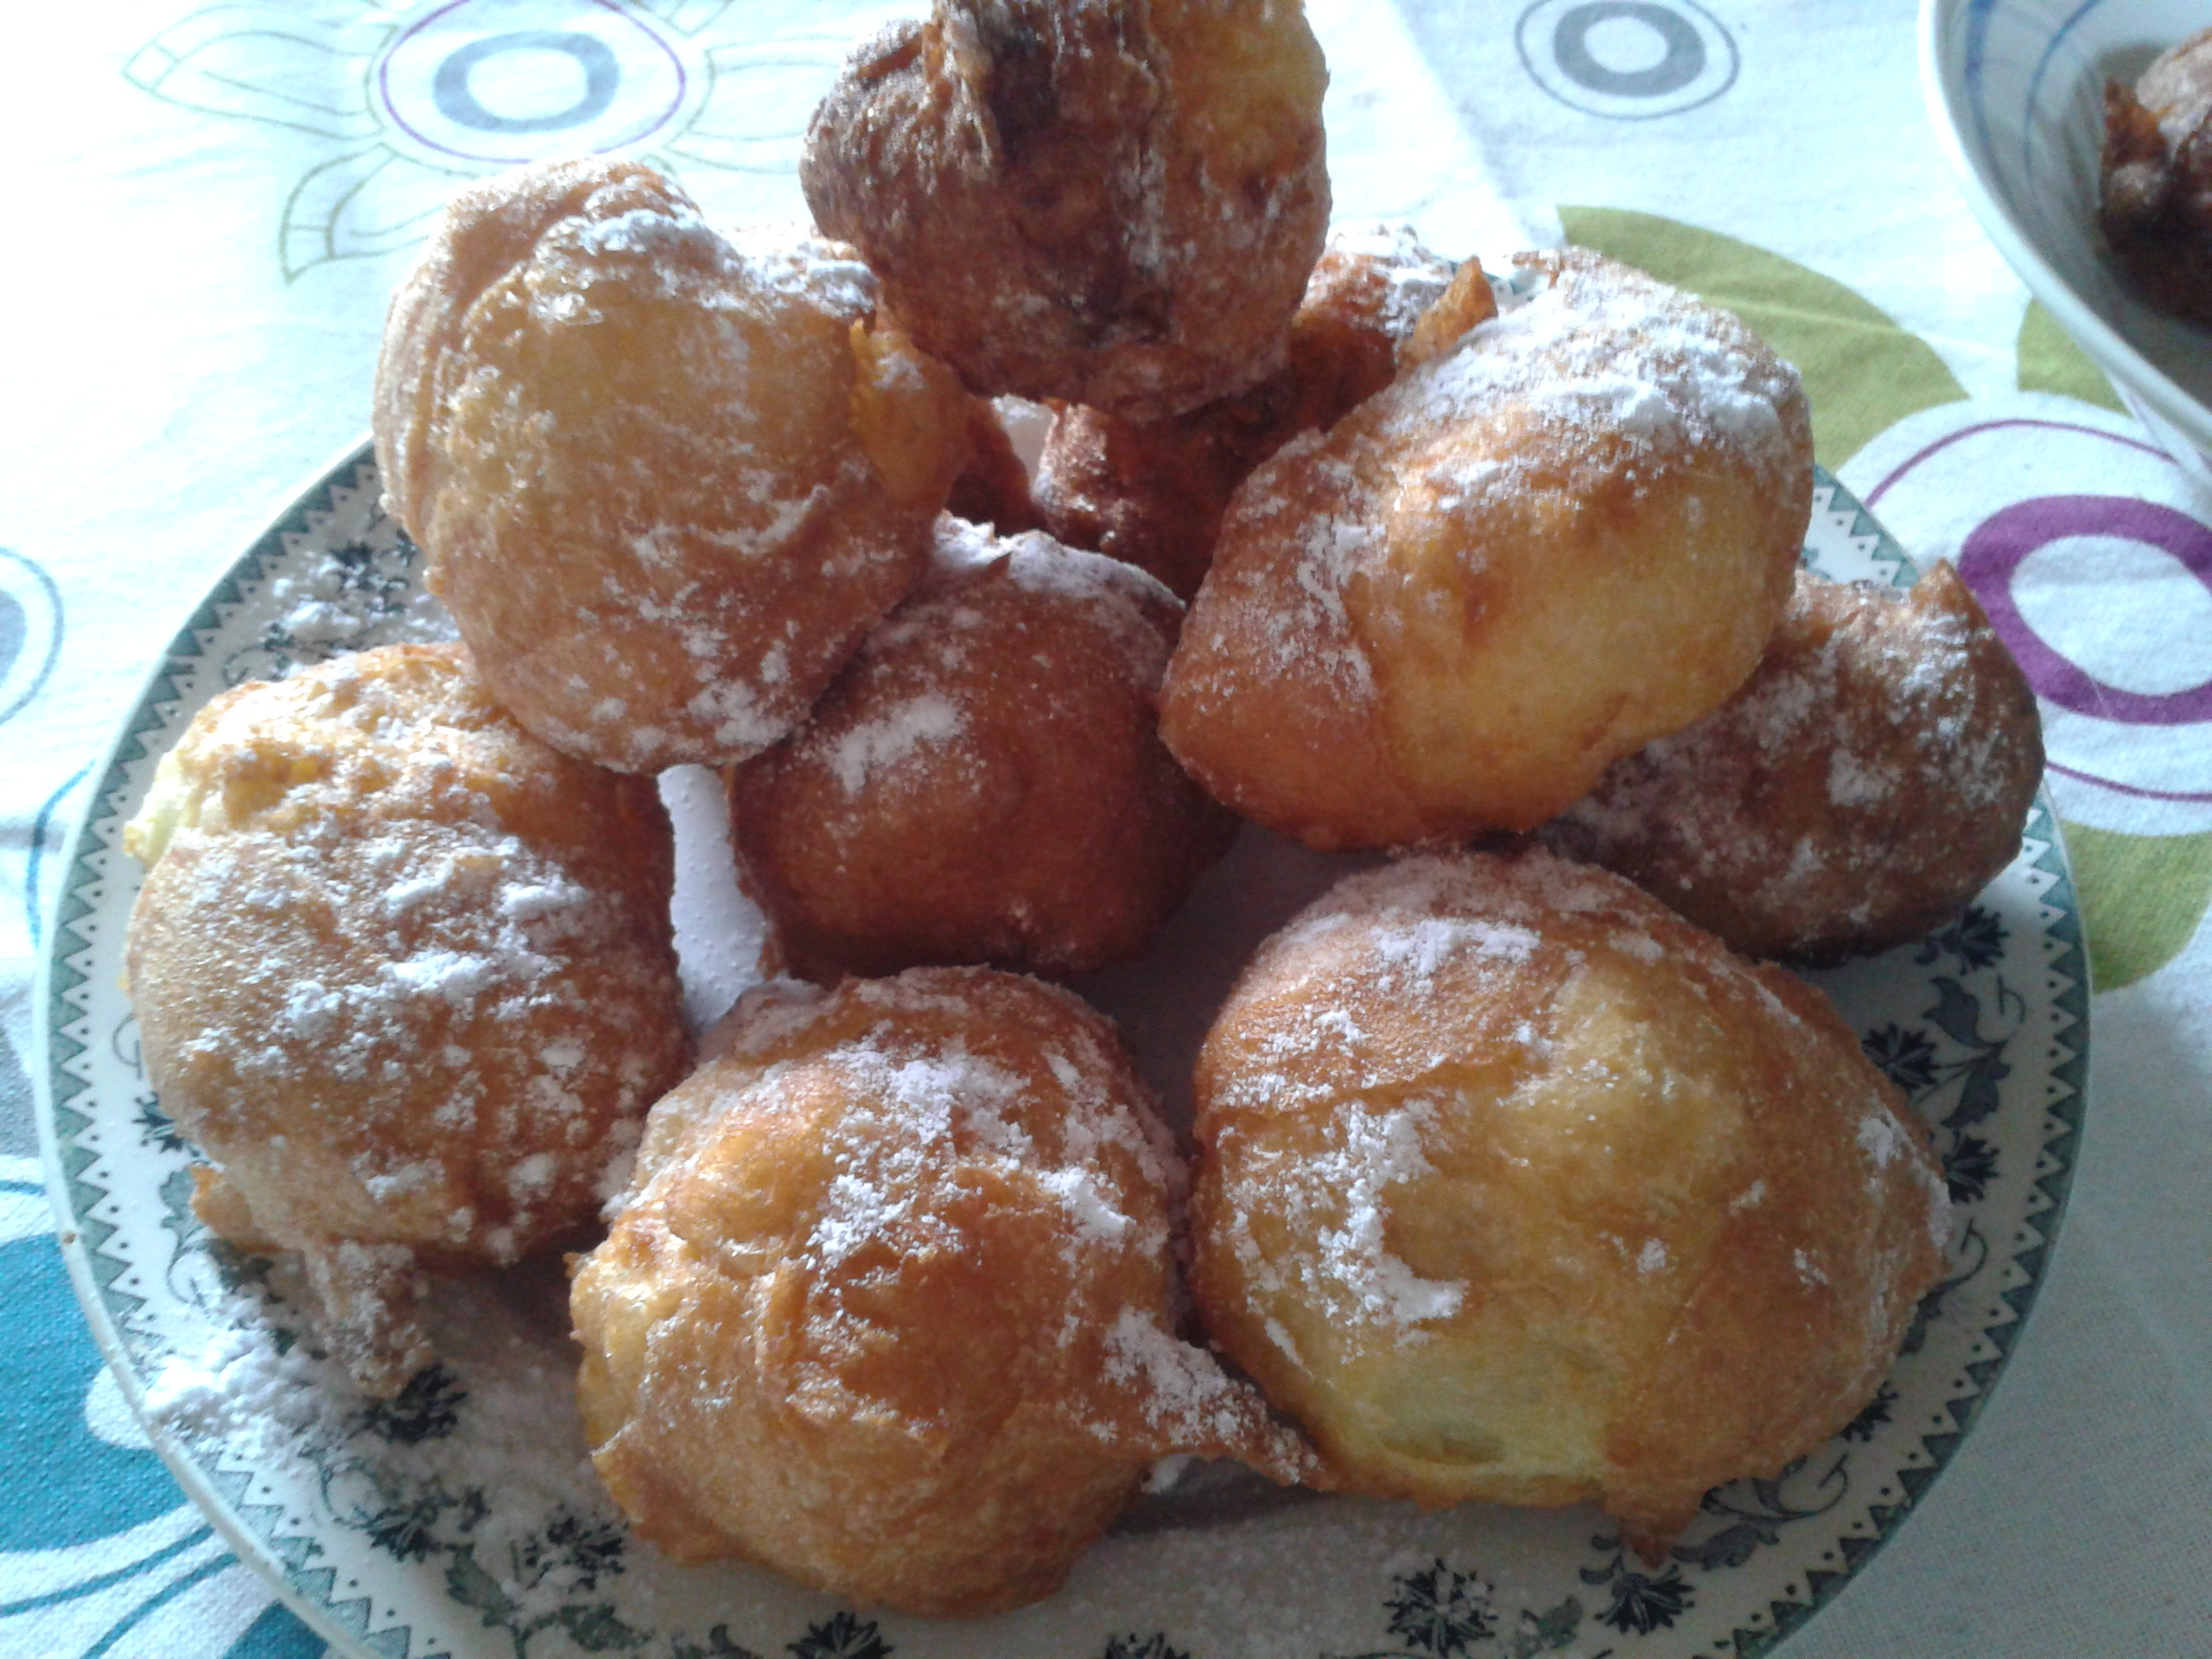 ... beignets choux beignets and apricot curd apple beignets and cheesecake